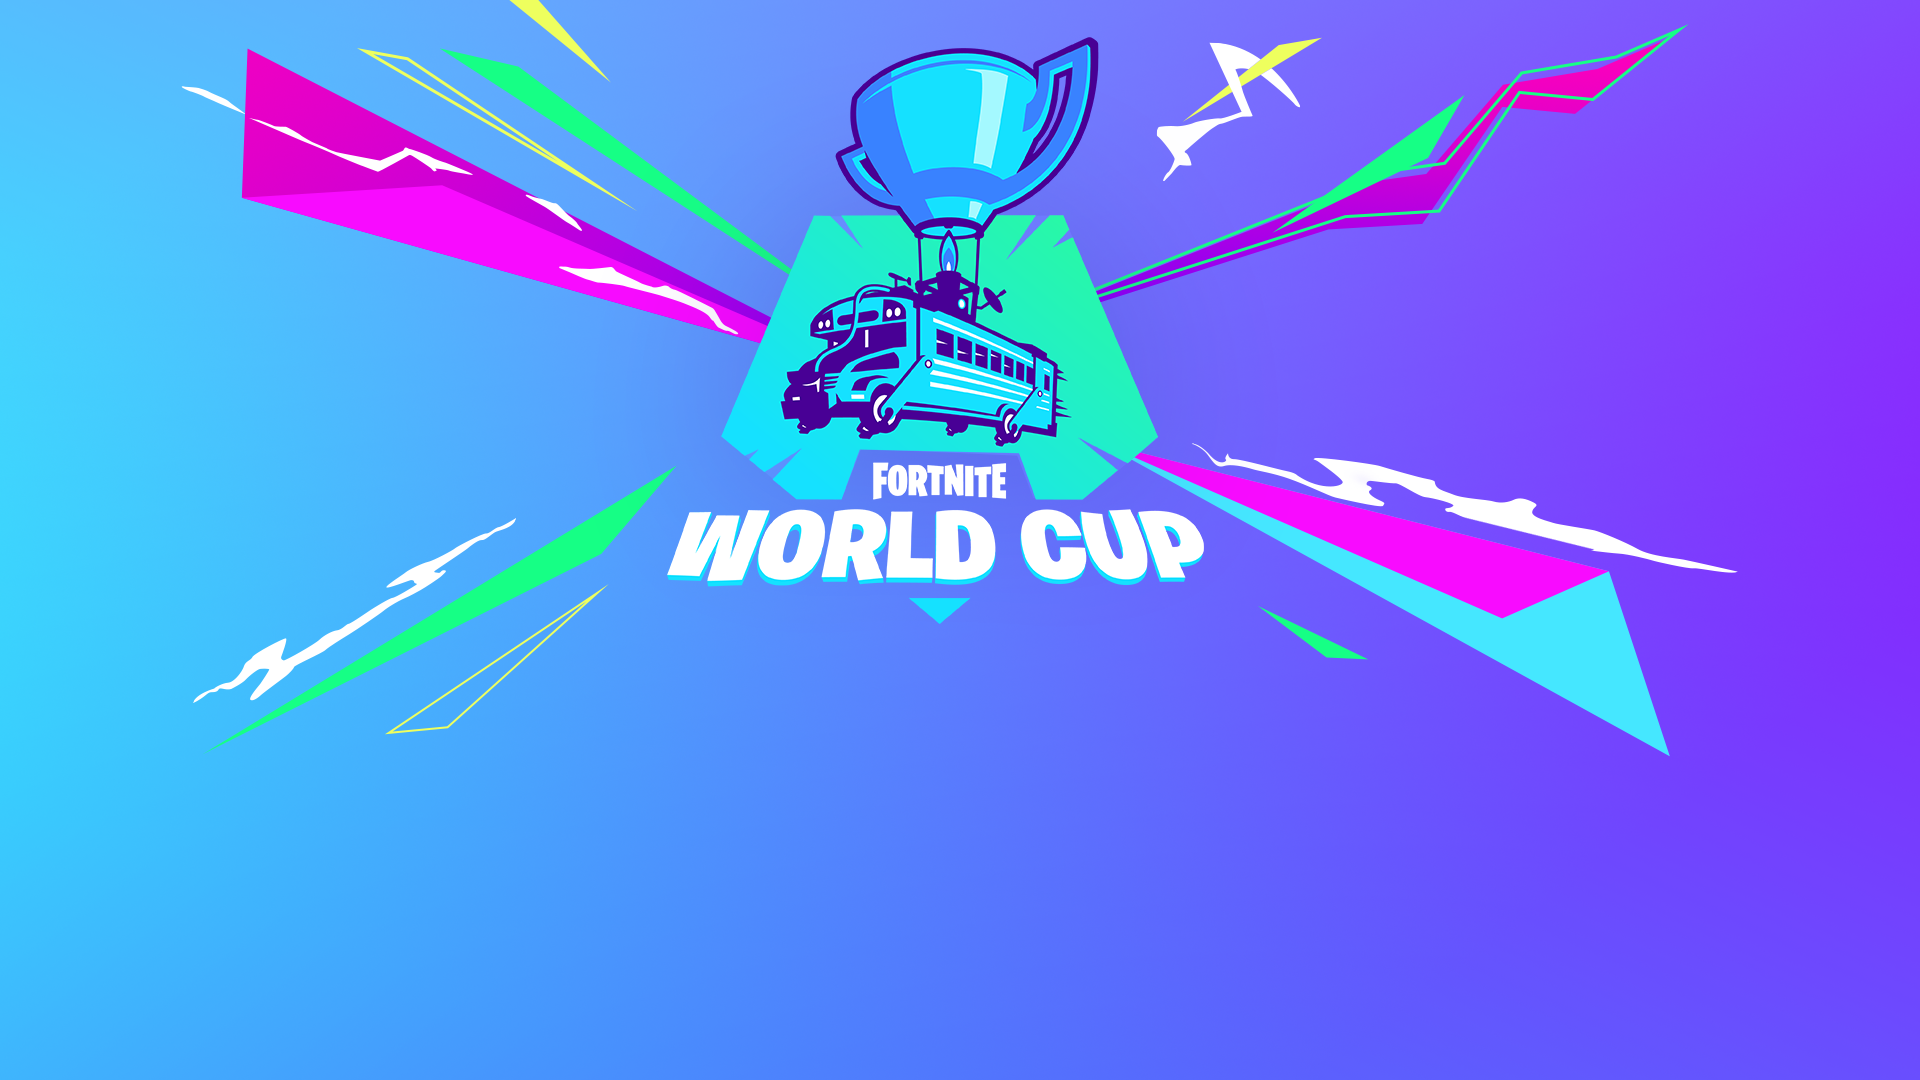 fortnite world cup details and 100 000 000 competitive prize pool for 2019 - fortnite world cup logo